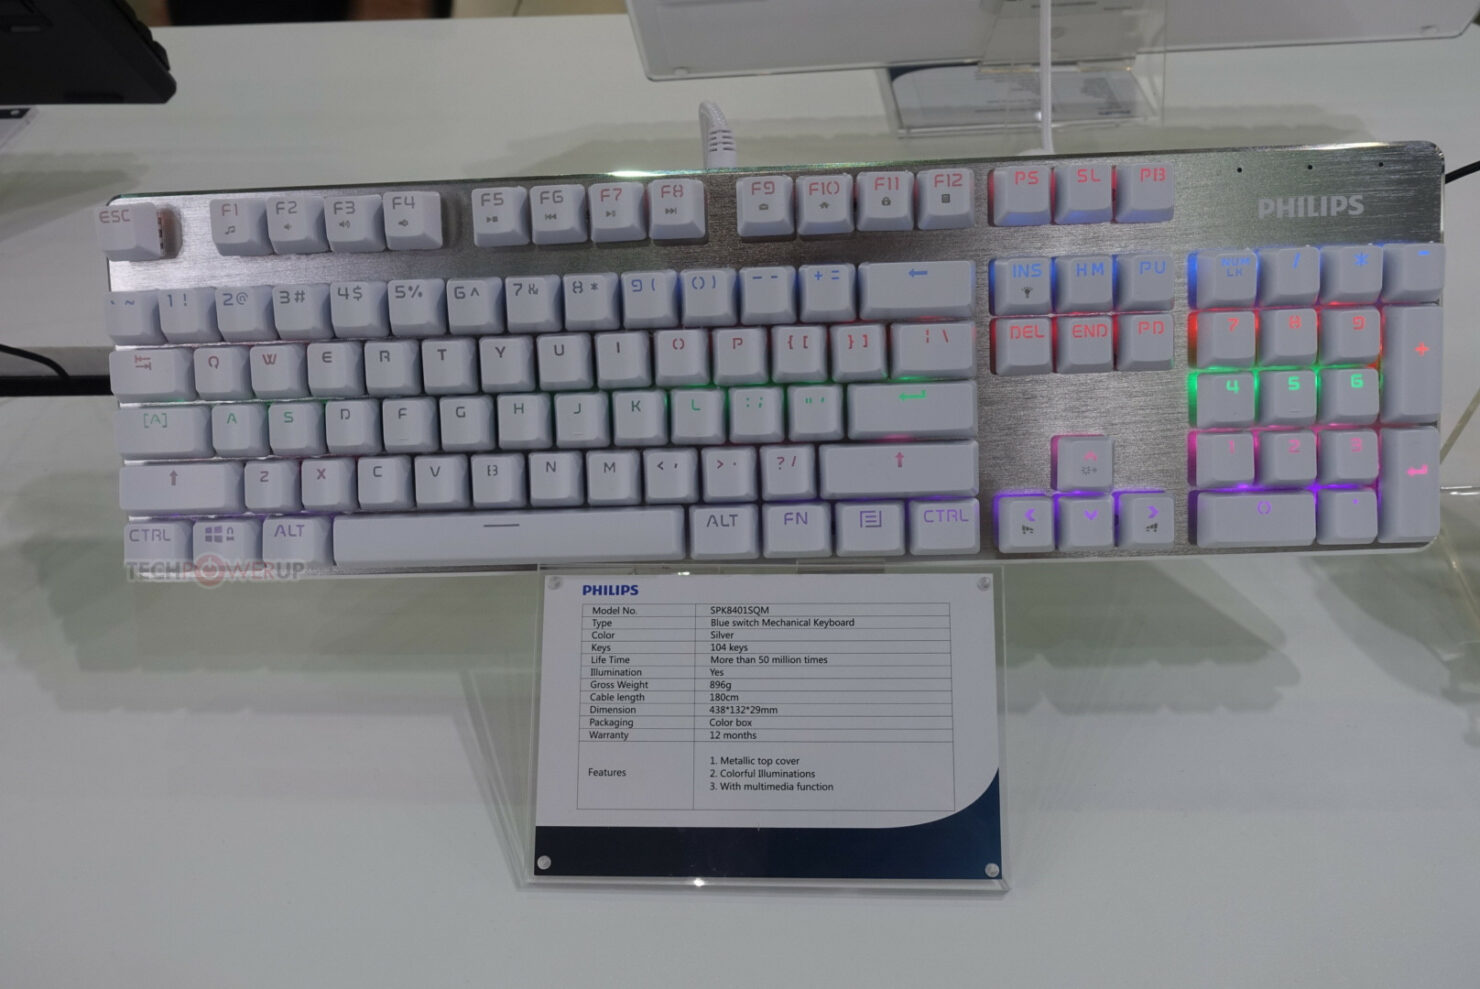 wccftech-philips-keyboards-computex-2018-3